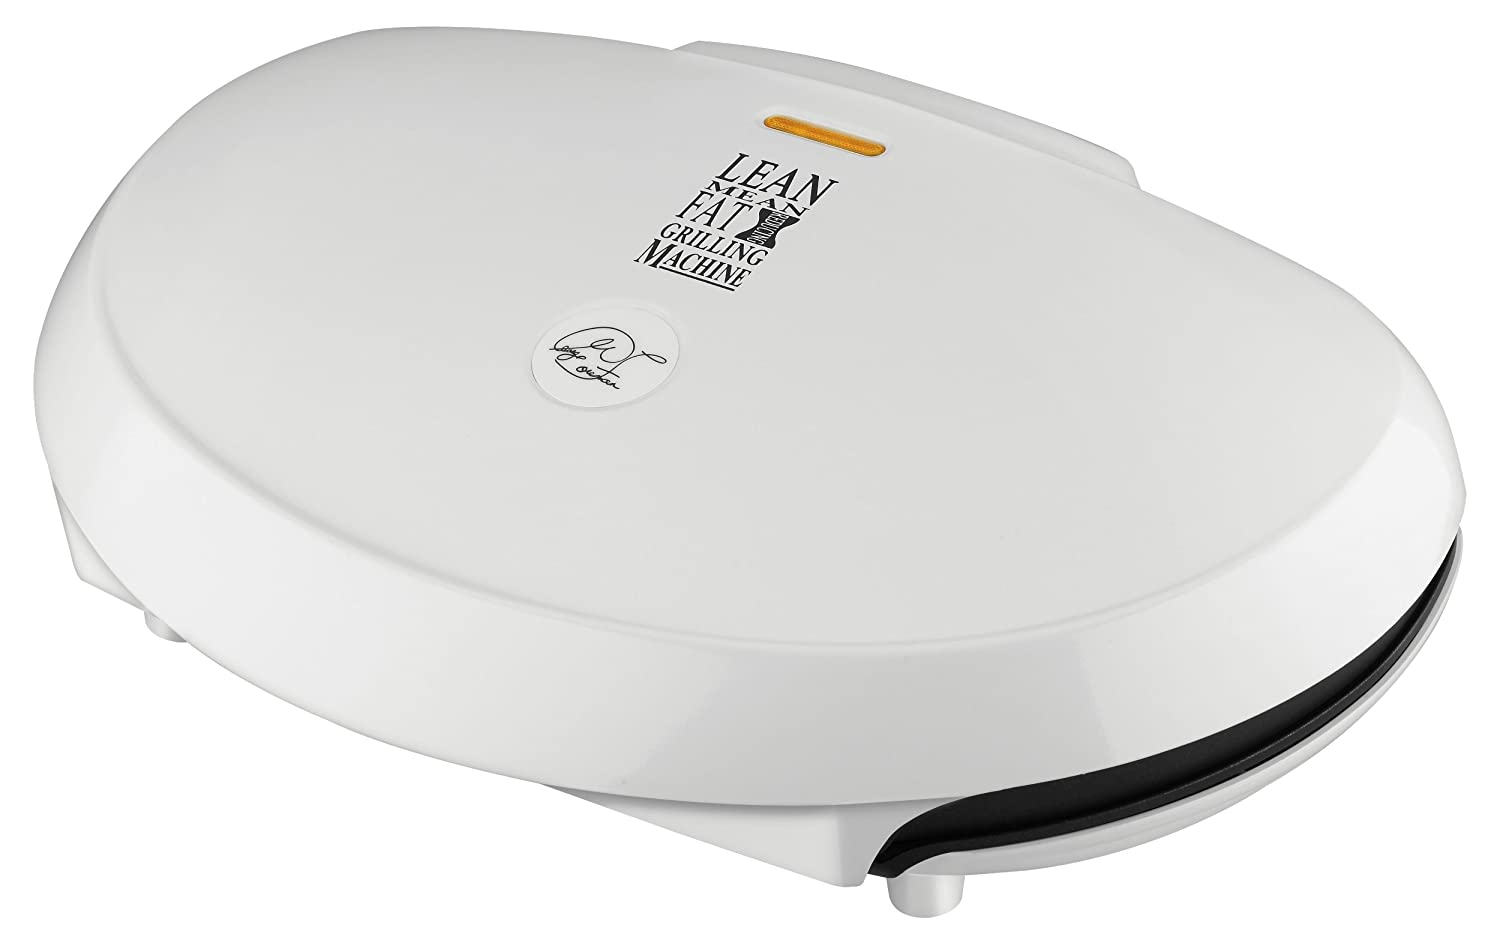 George Foreman GR1212 Jumbo-Size Electric Nonstick Contact Grill